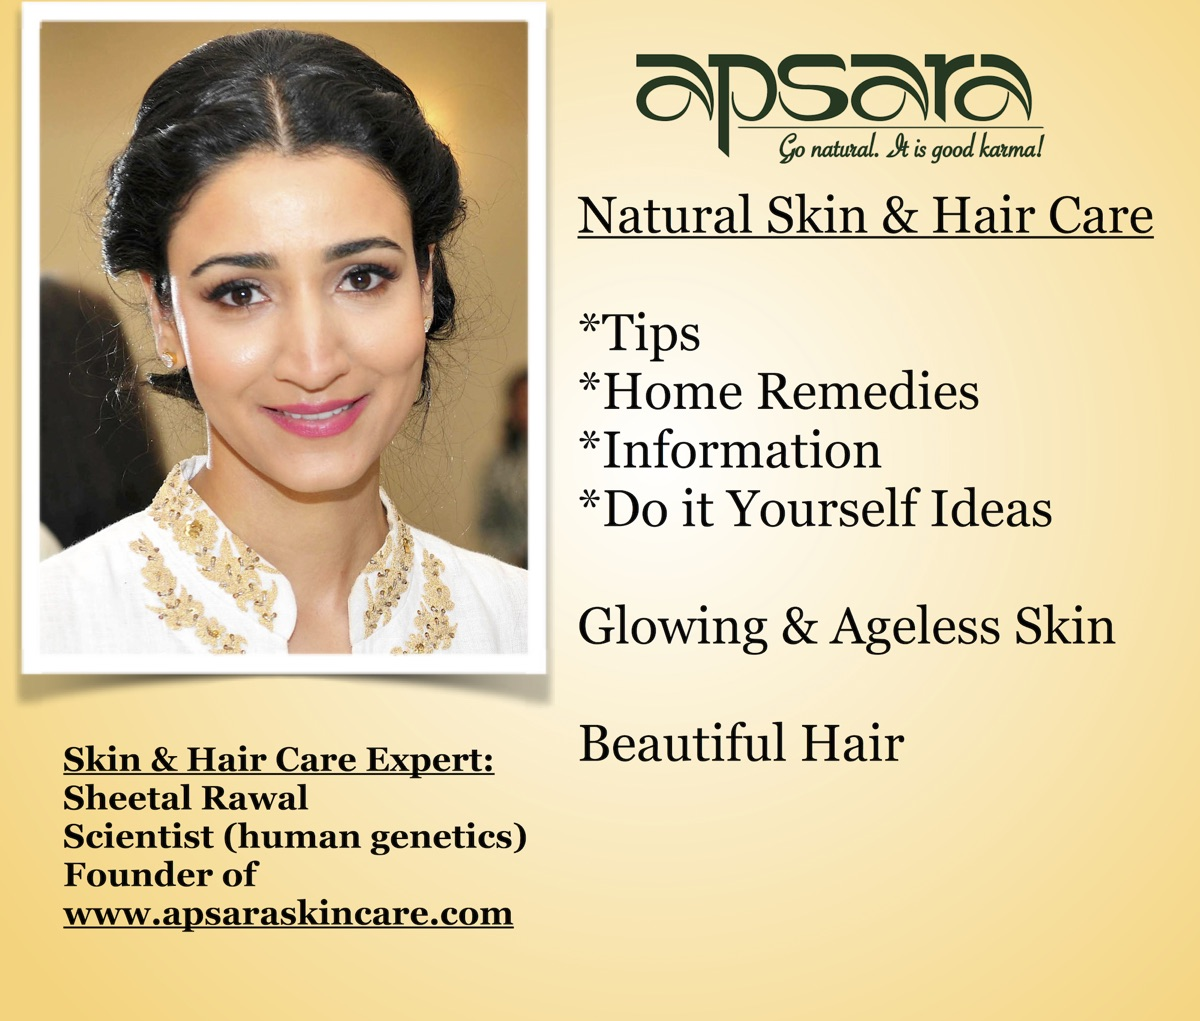 Apsara Skin Care: Tips, Remedies & Info for Flawless Skin & Beautiful Hair